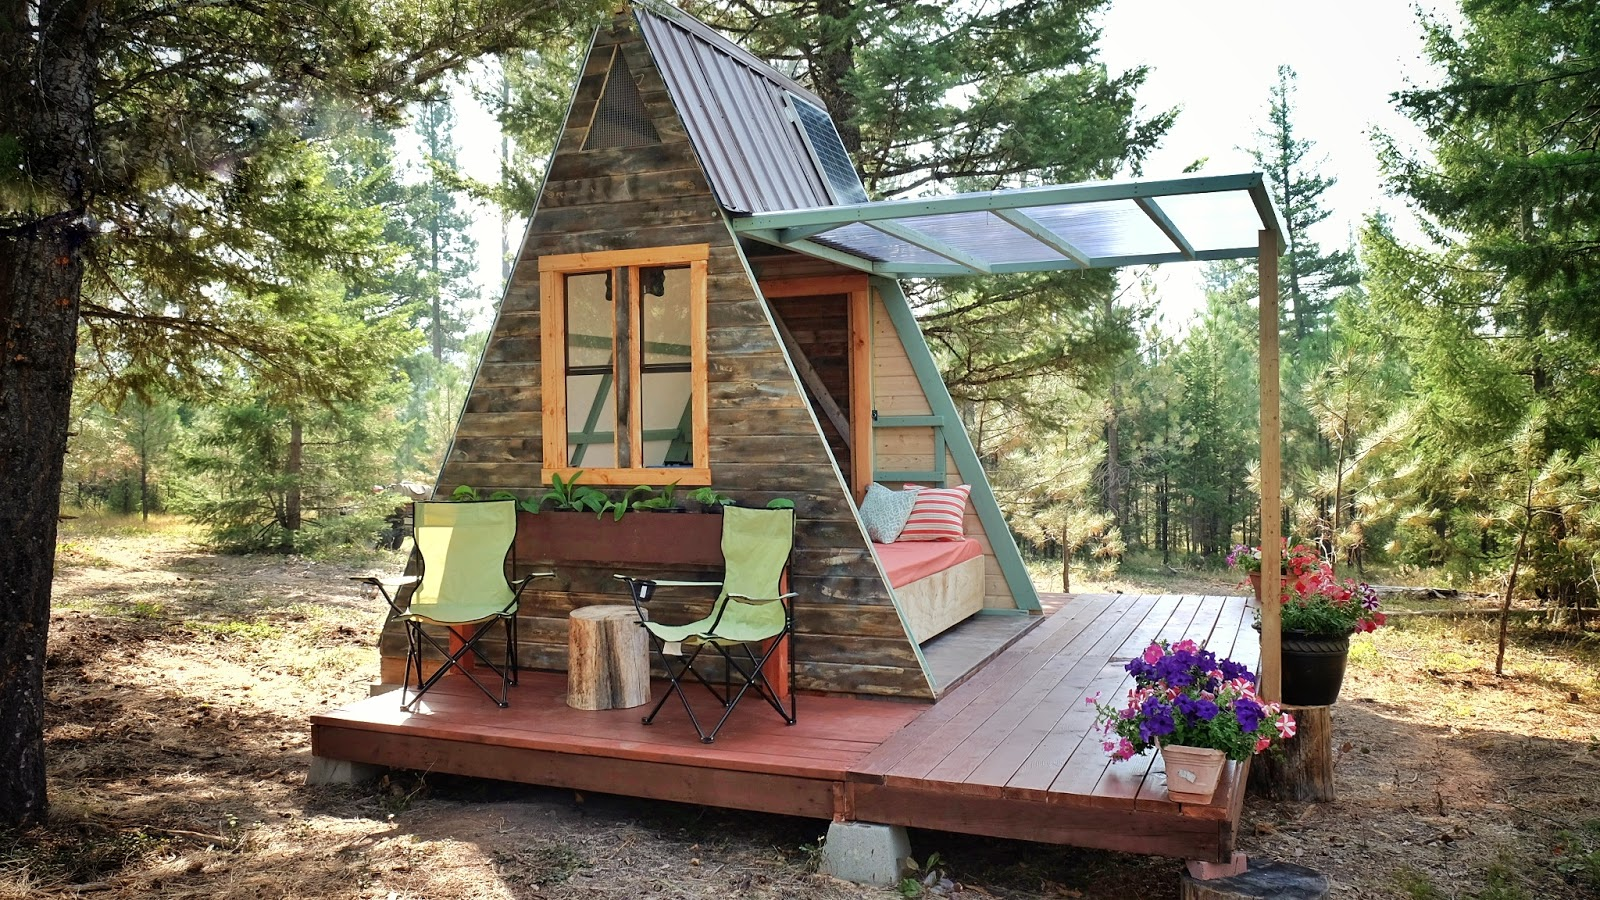 TINY HOUSE TOWN: A-Frame Cabin That Cost Just $700 To Build!